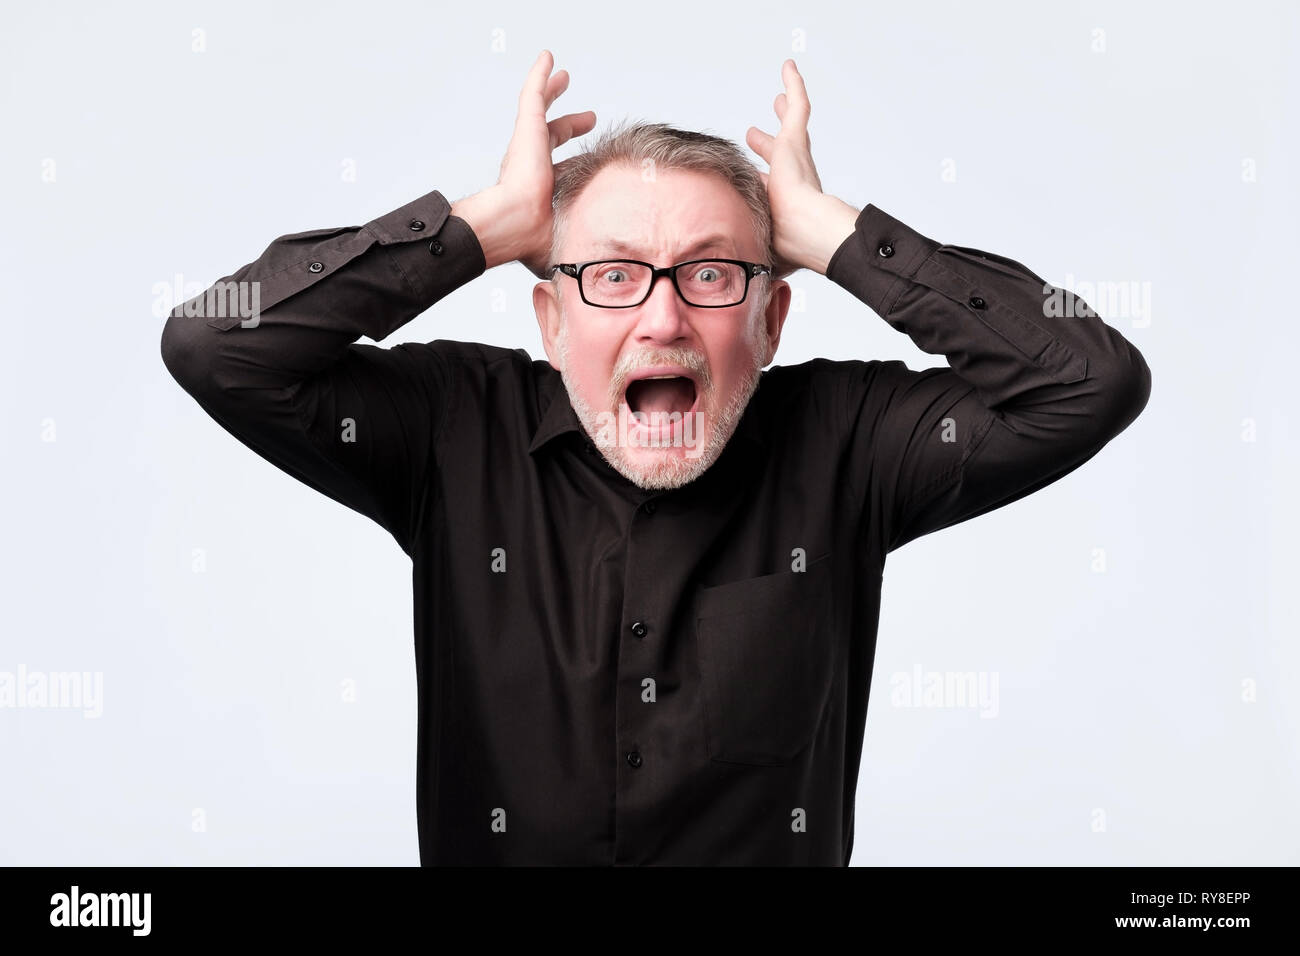 senior man eyes mouth wide open, hands in air yelling screaming shouting - Stock Image